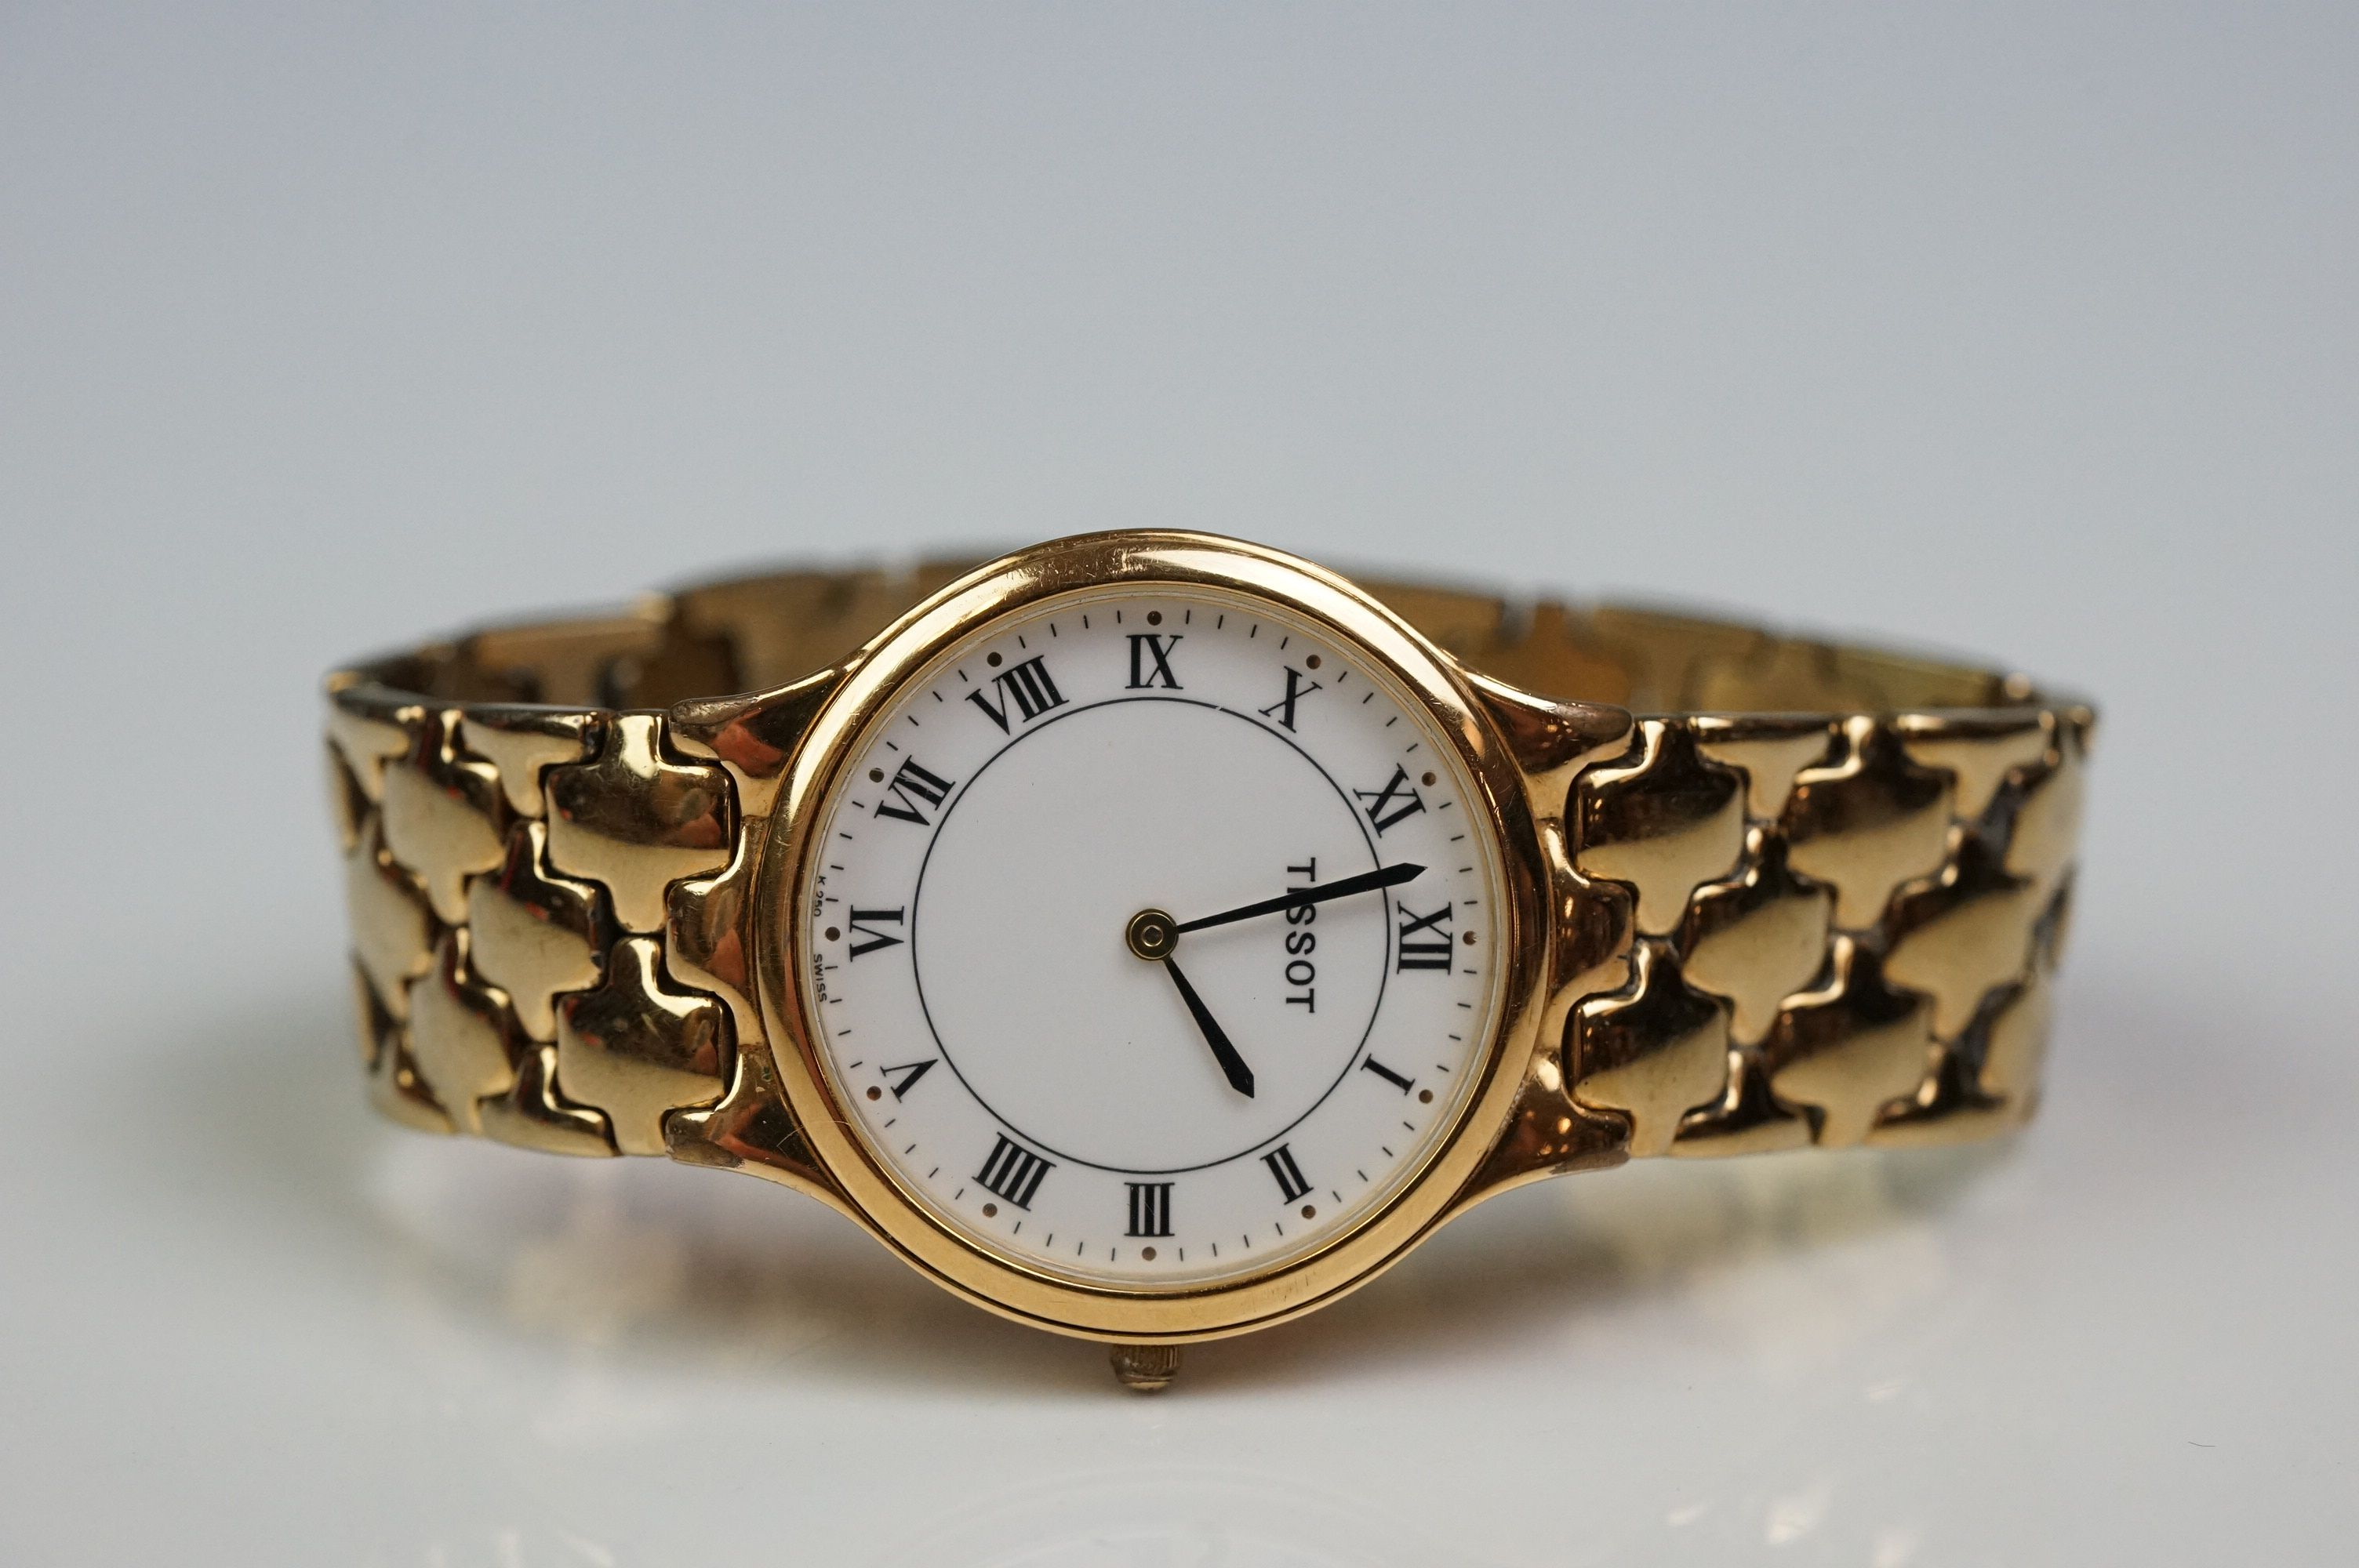 Tissot K250 gold plated dress watch - Image 8 of 10